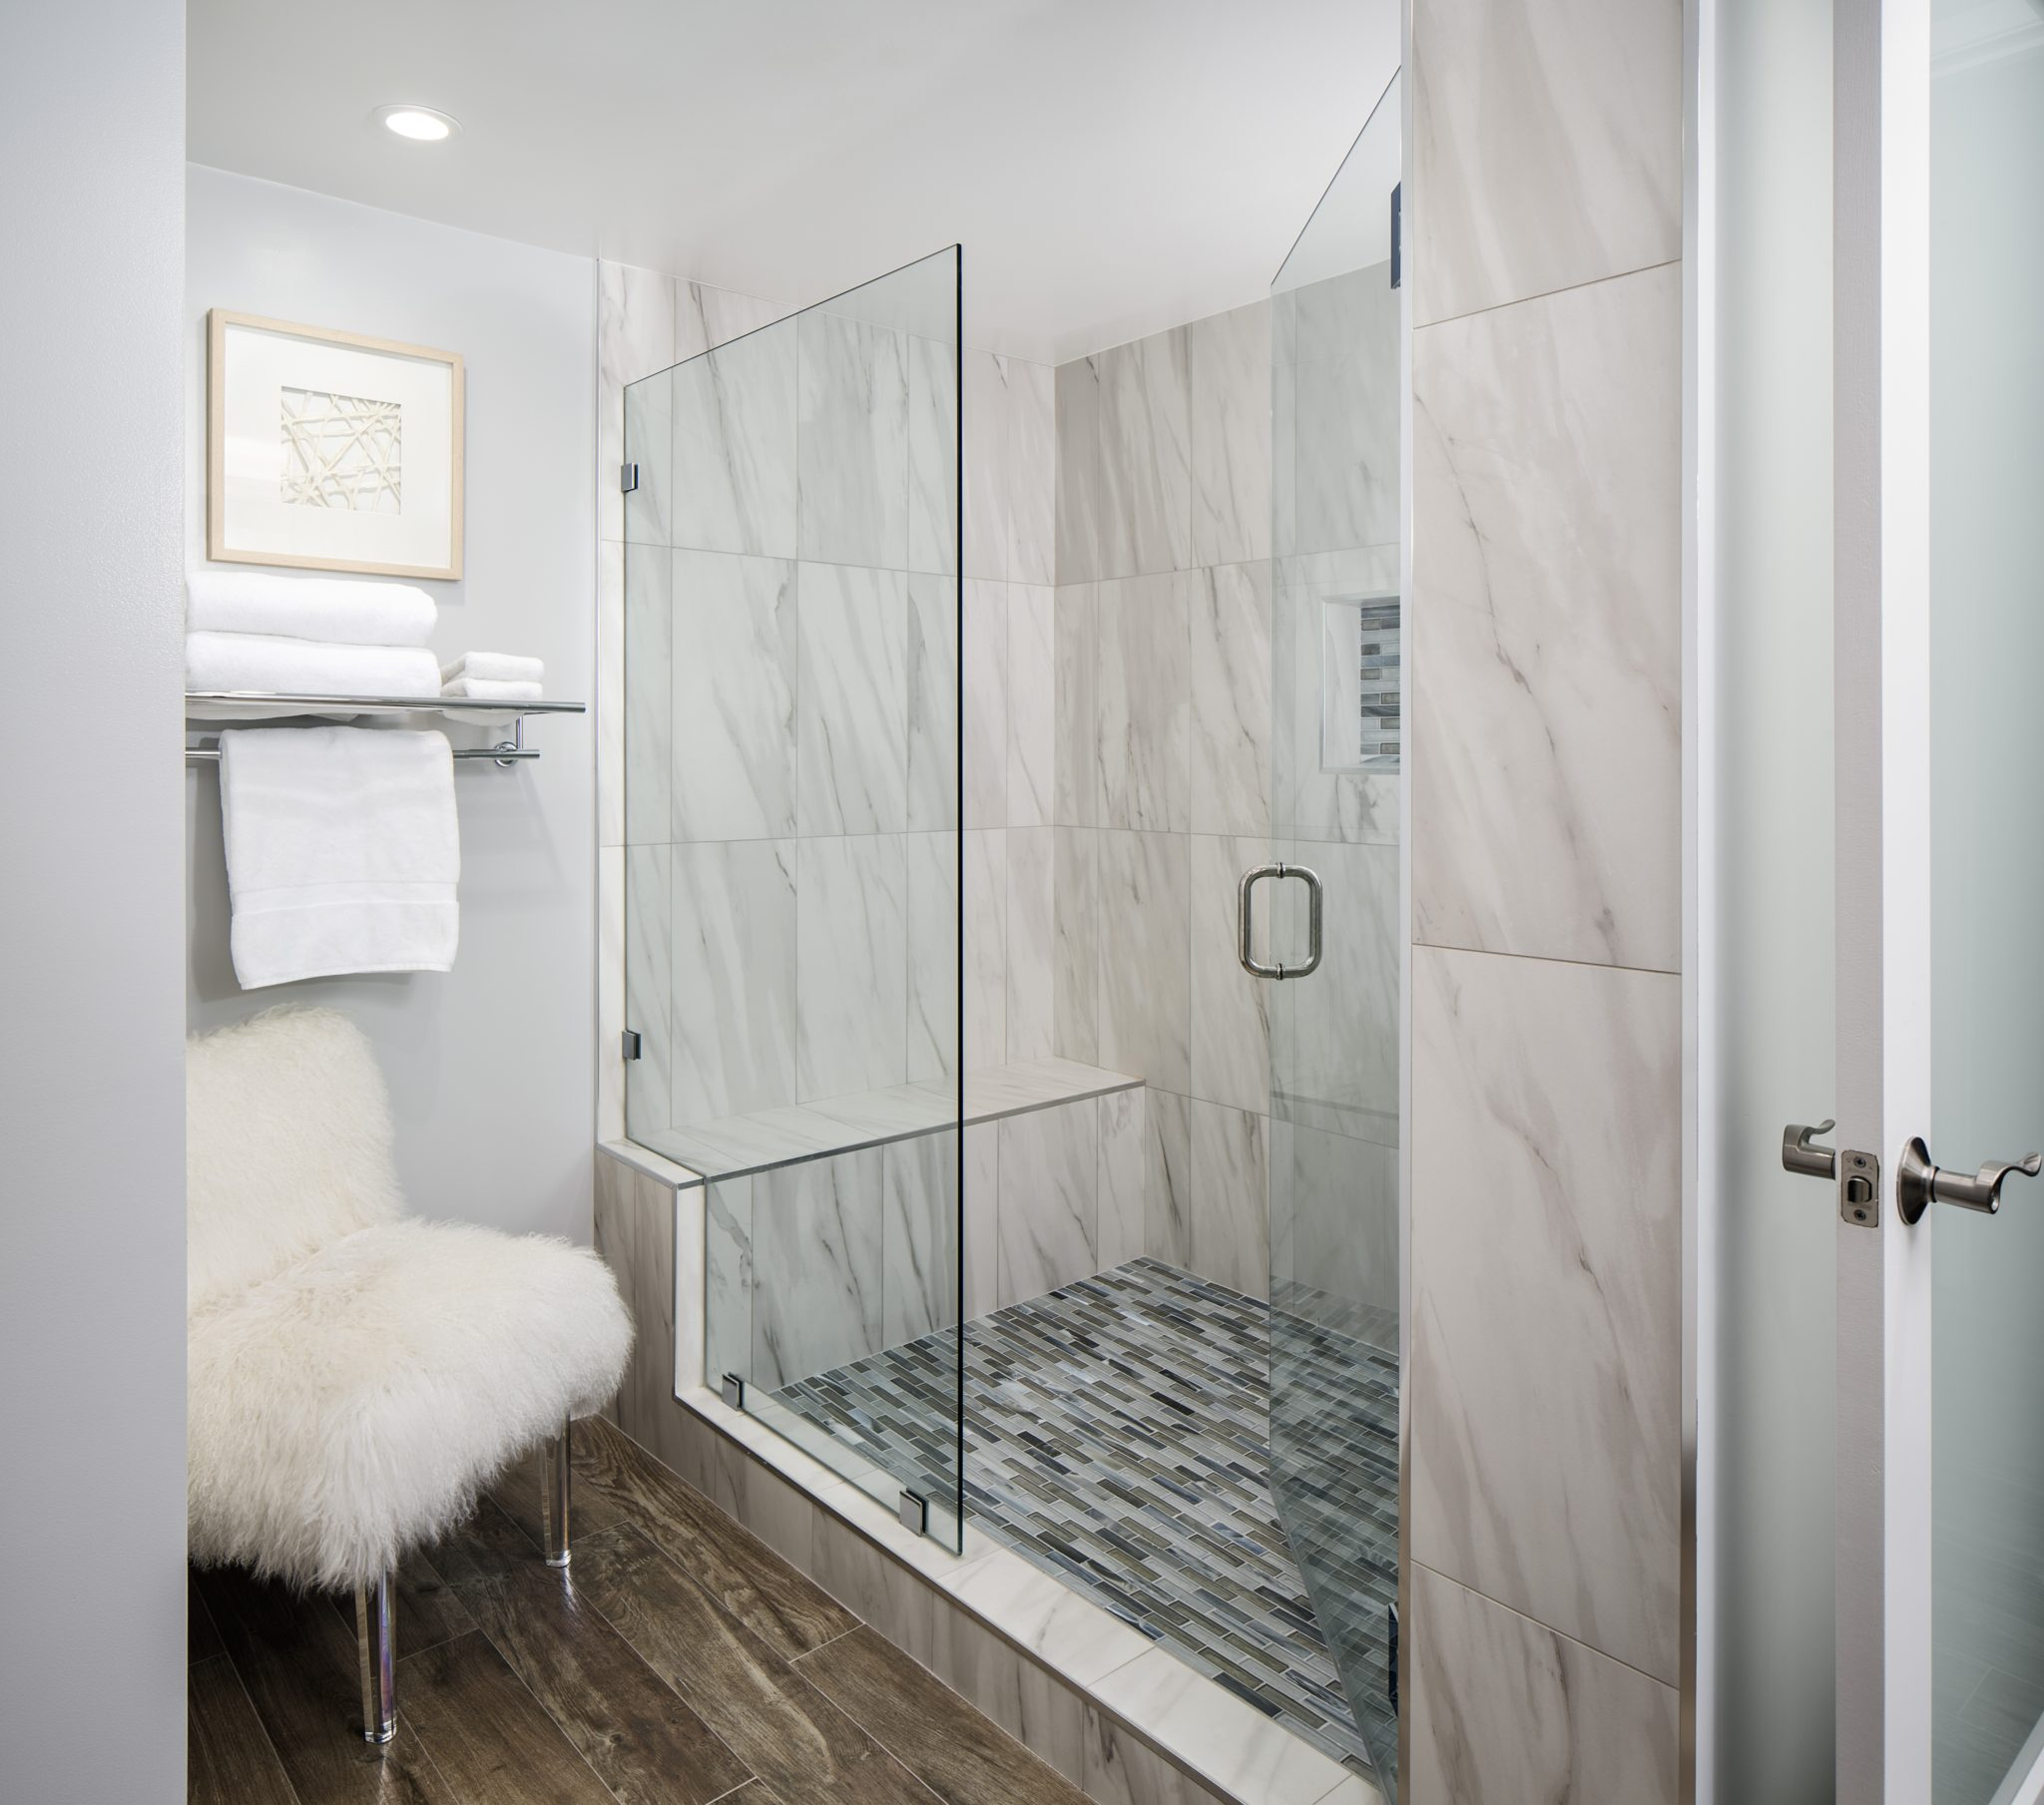 40 Bathrooms With Mixed Tile Designs Chairish Blog